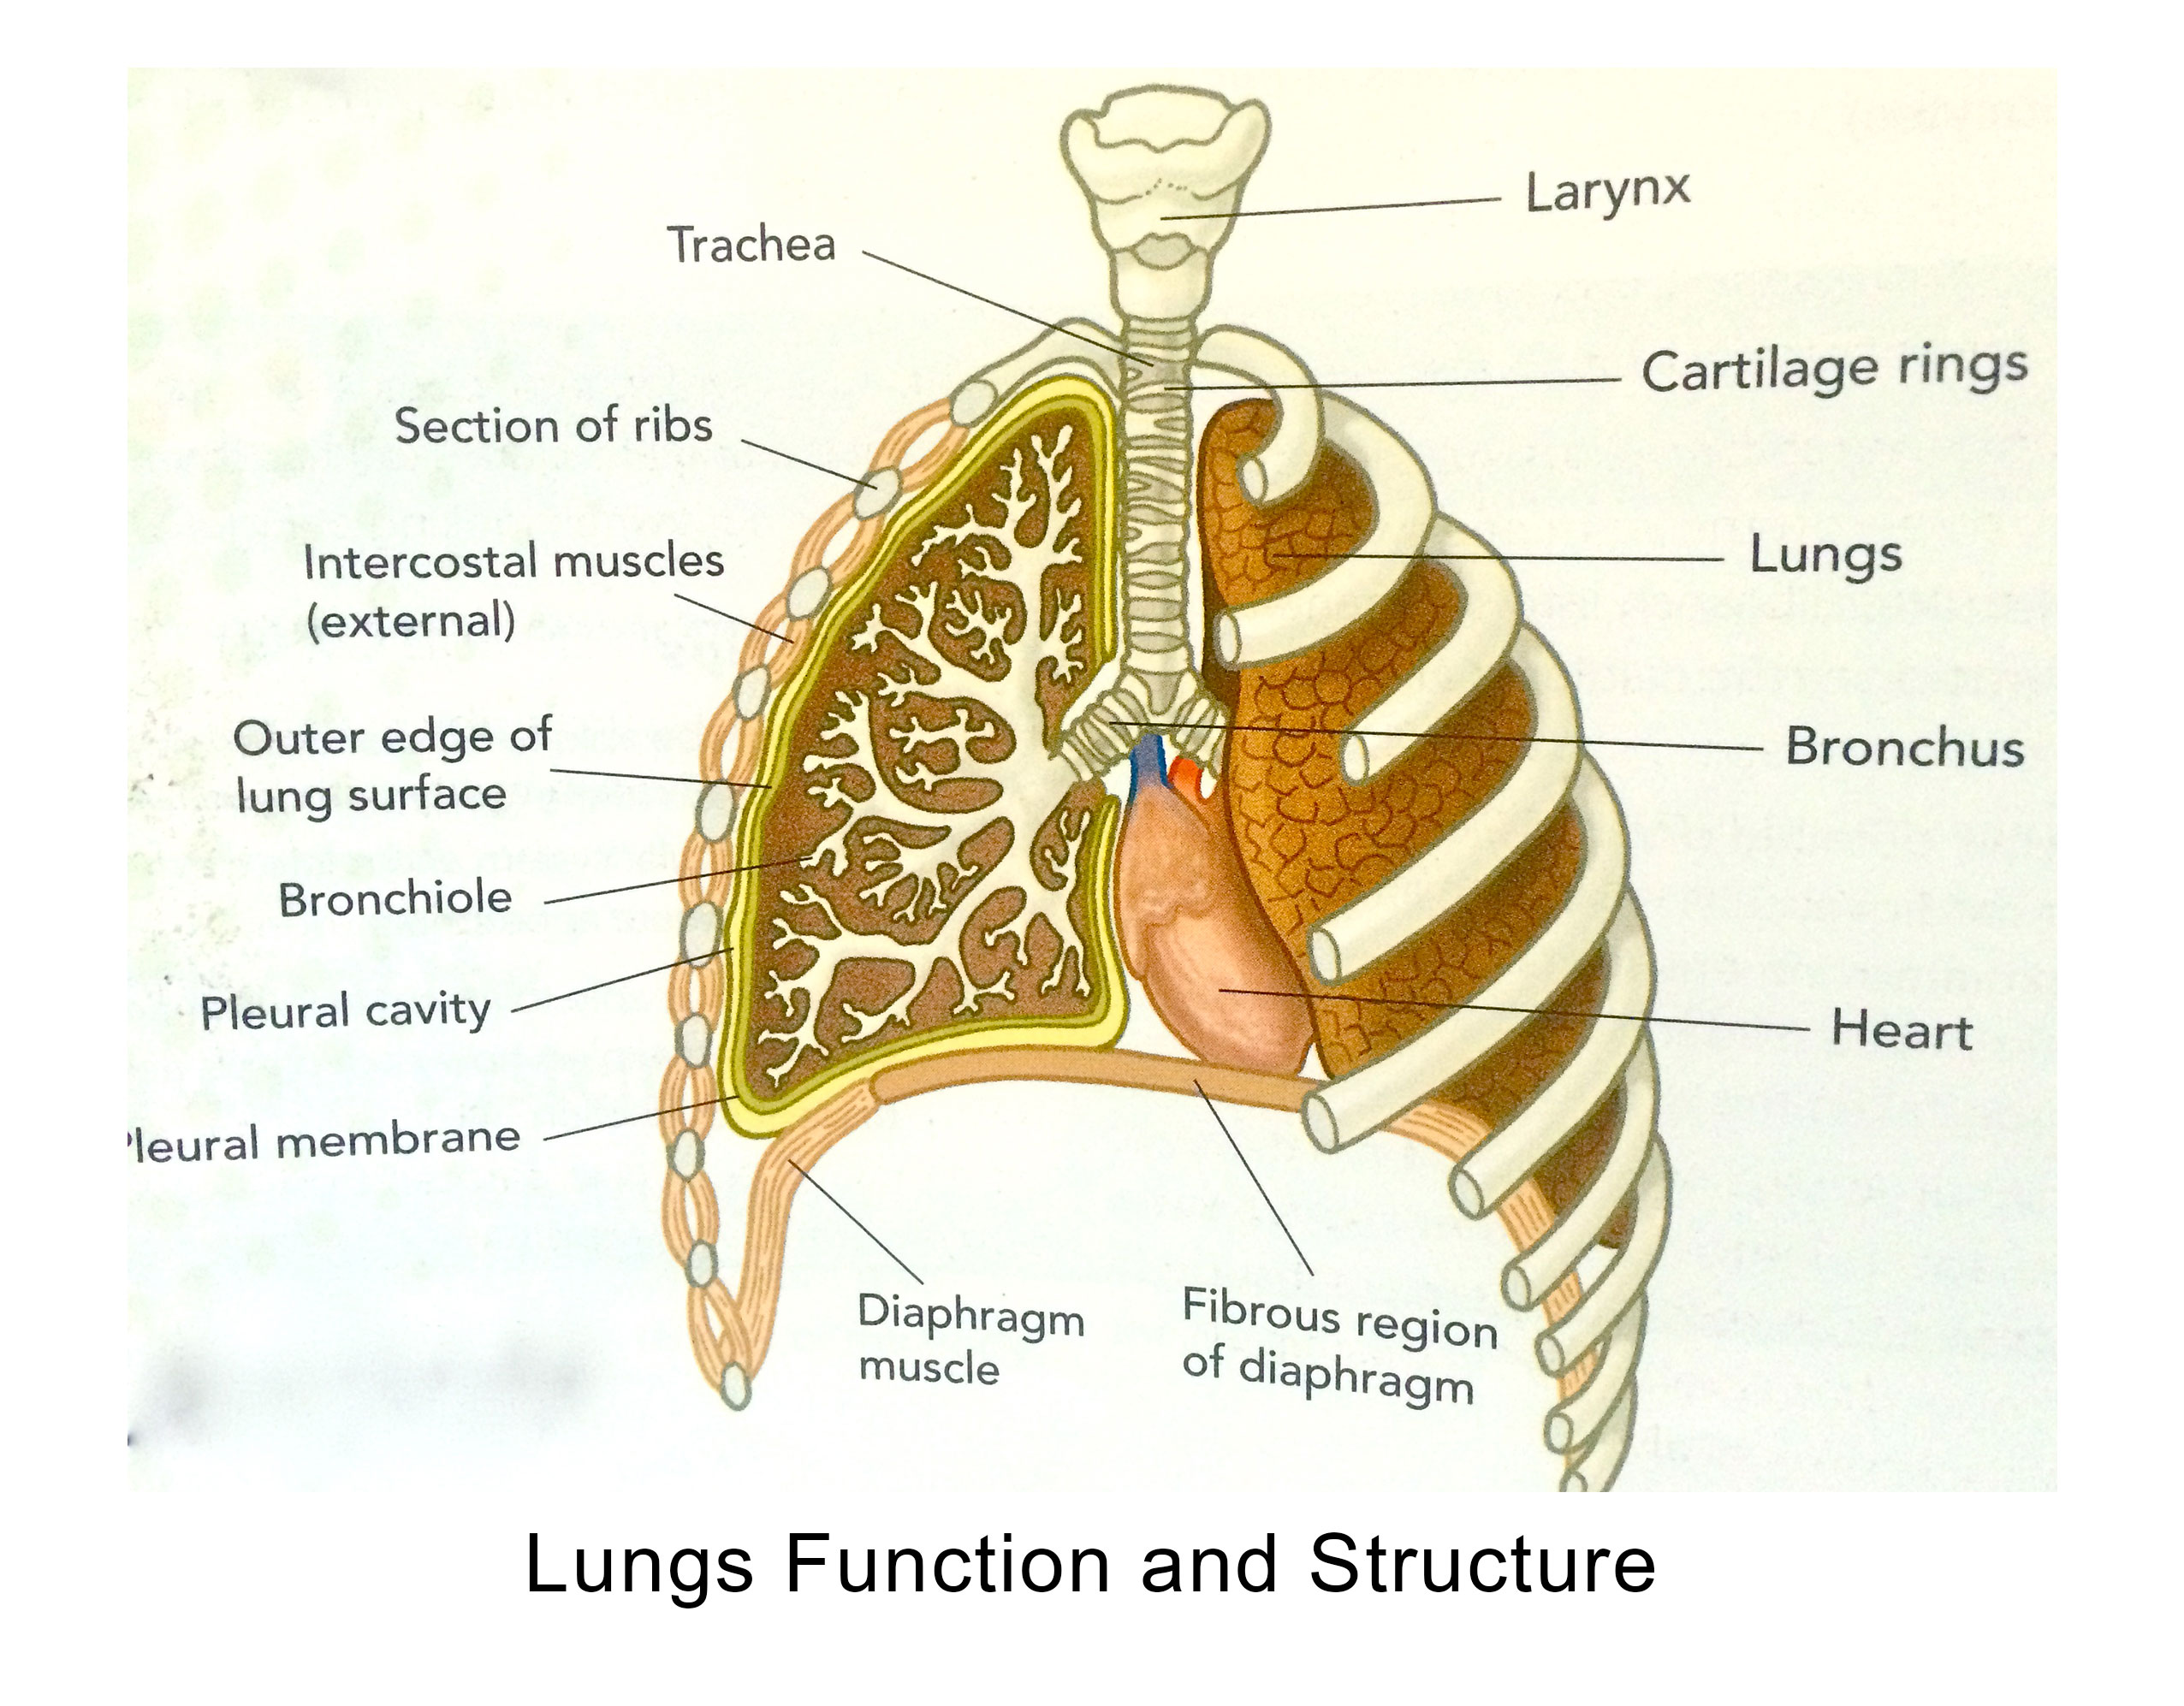 Lungs Function and Structure